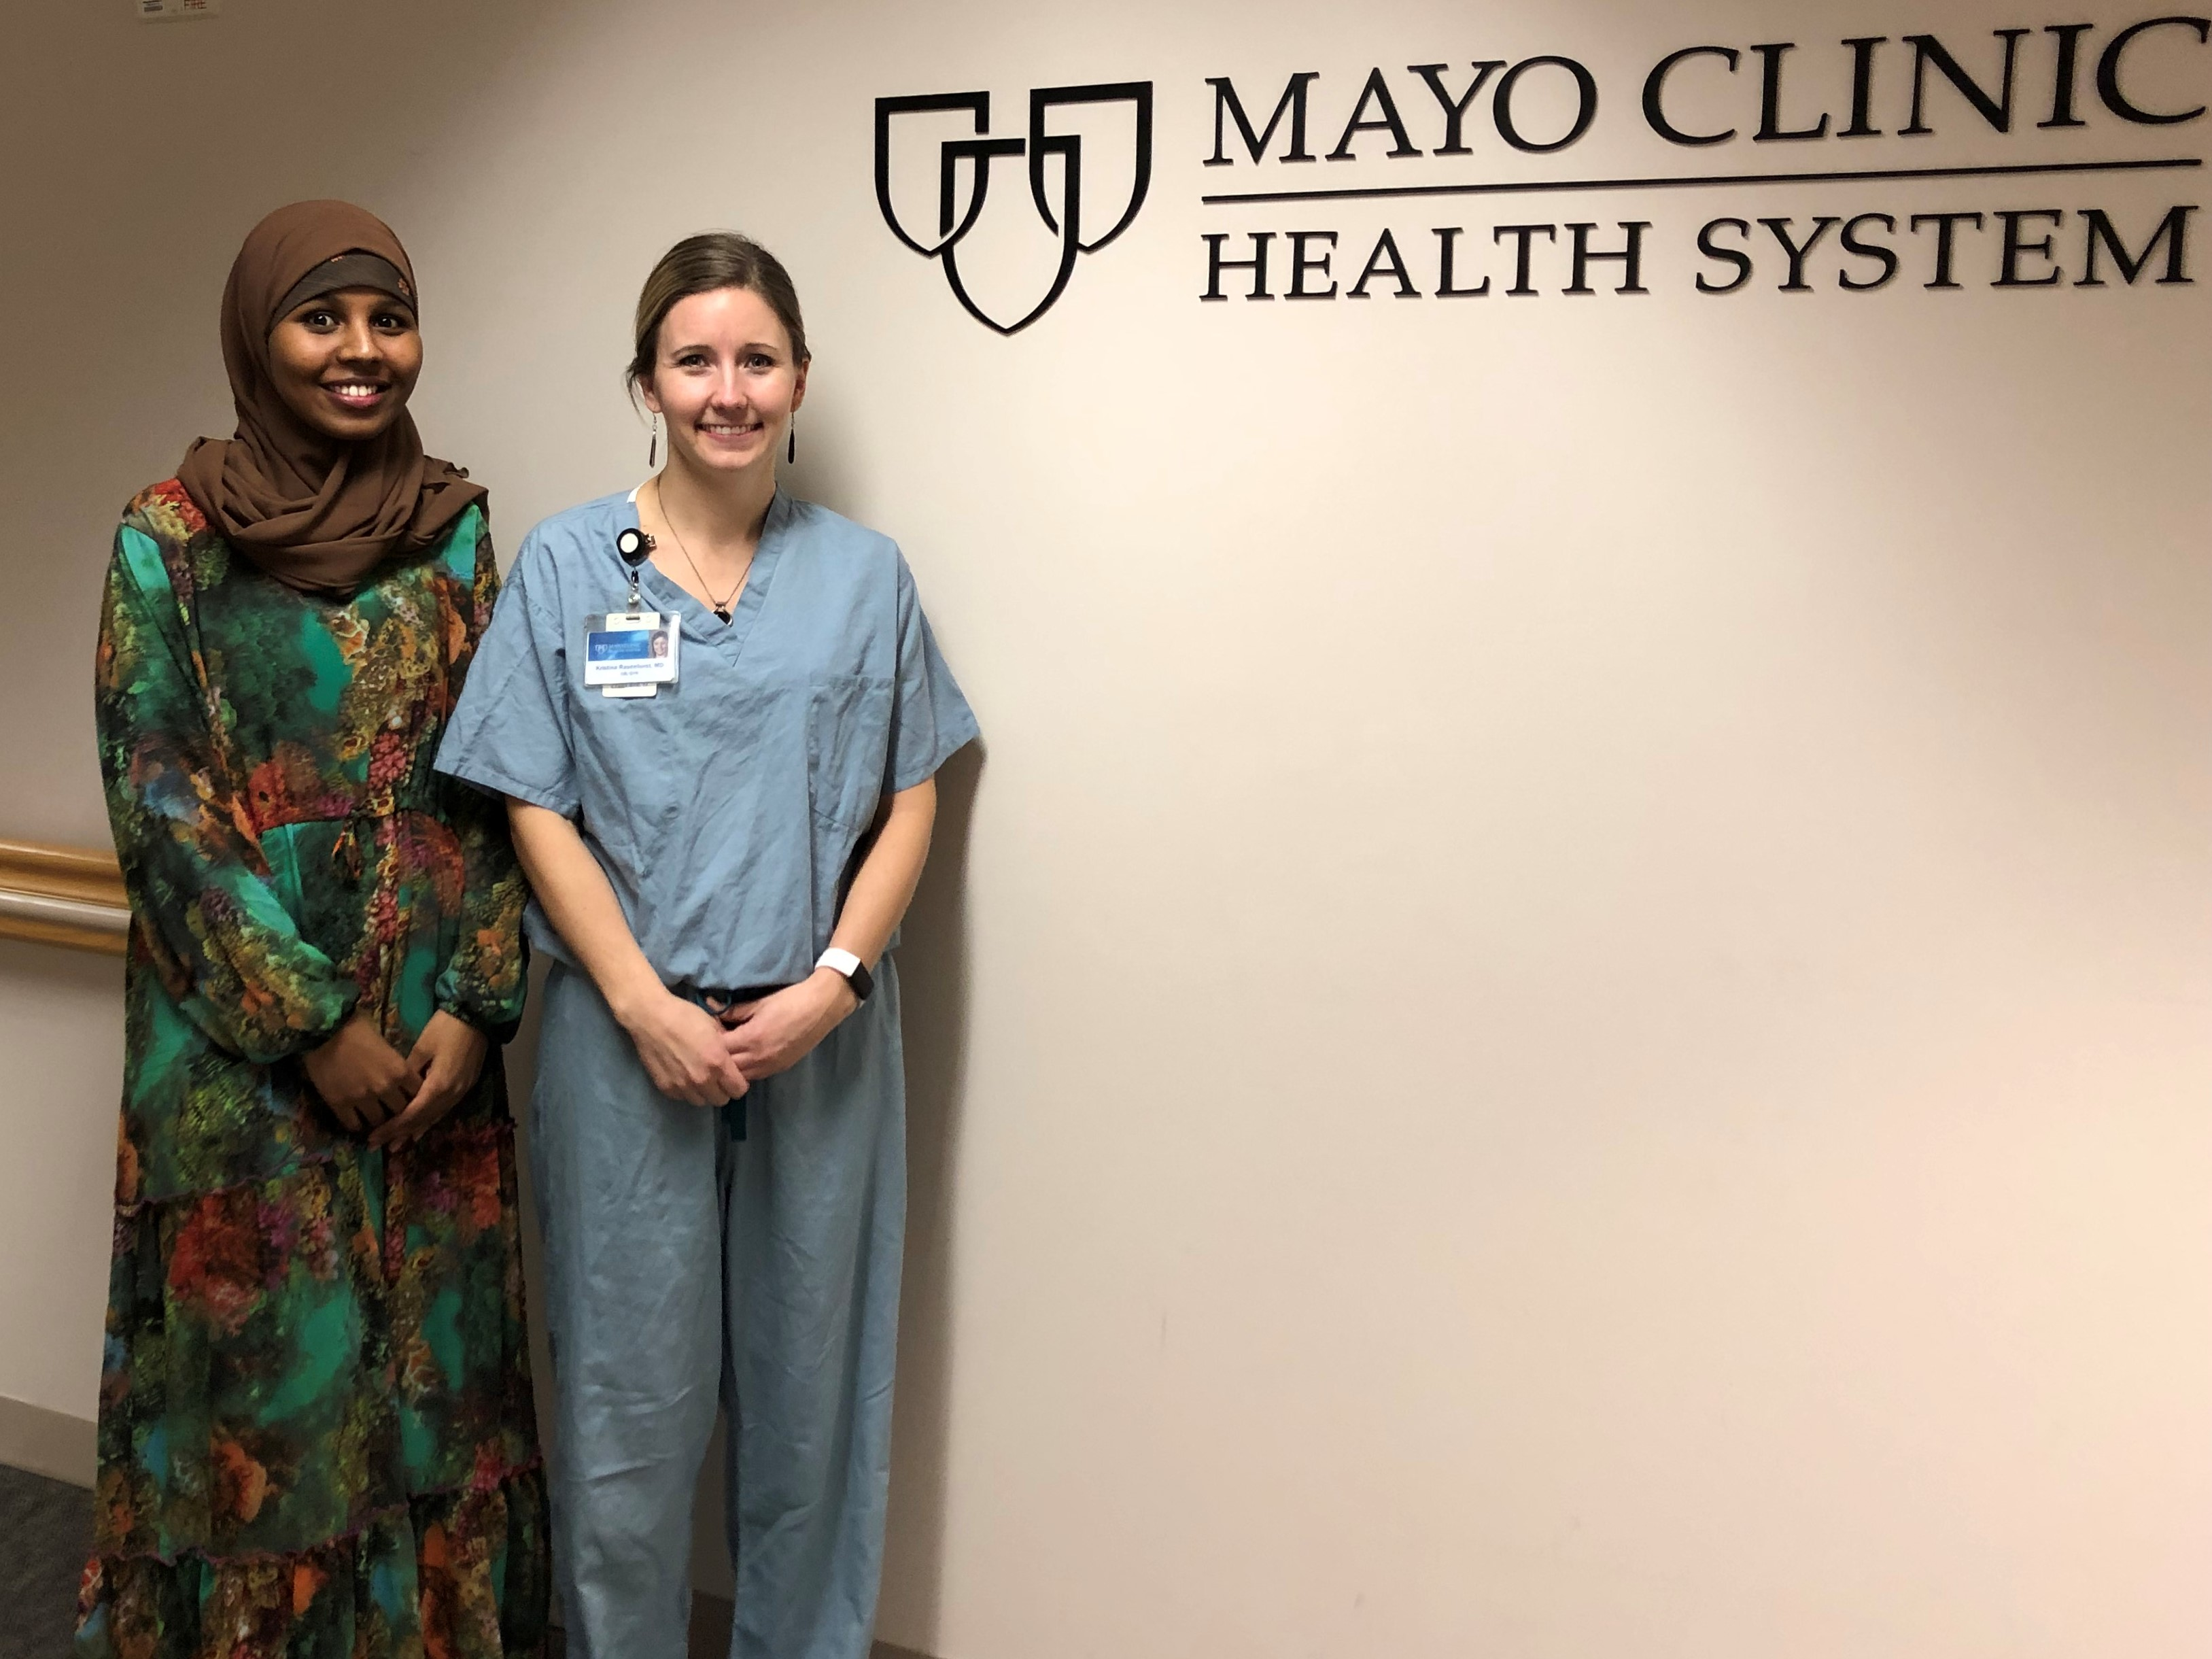 Mayo Clinic Health System in Faribault and HealthFinders